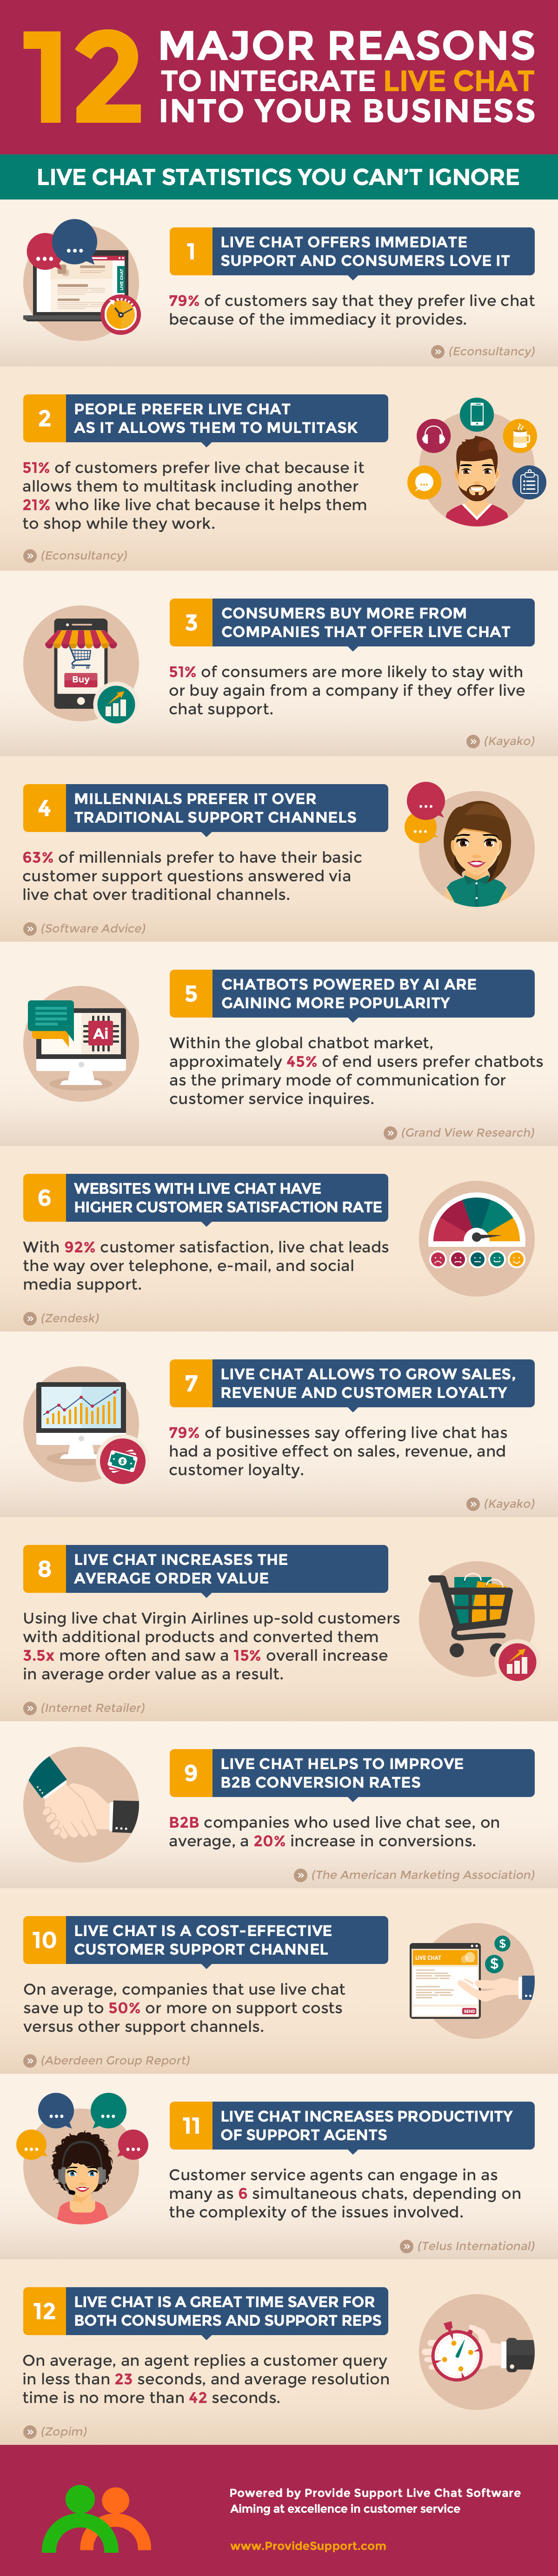 12 Major Reasons to Integrate Live Chat into Your Business